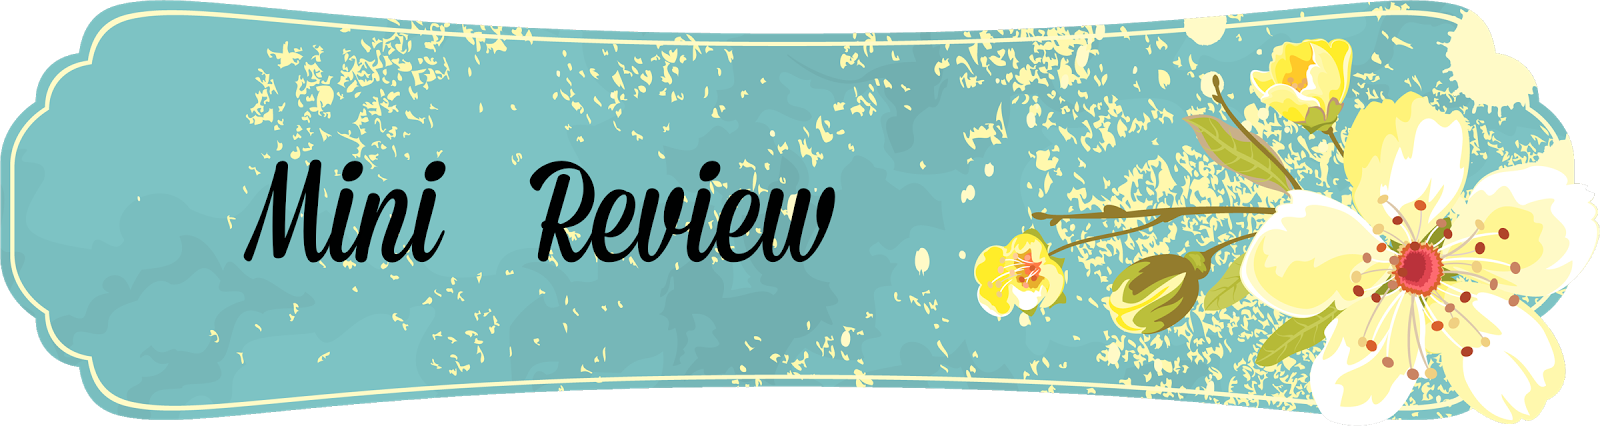 Mini Review banner